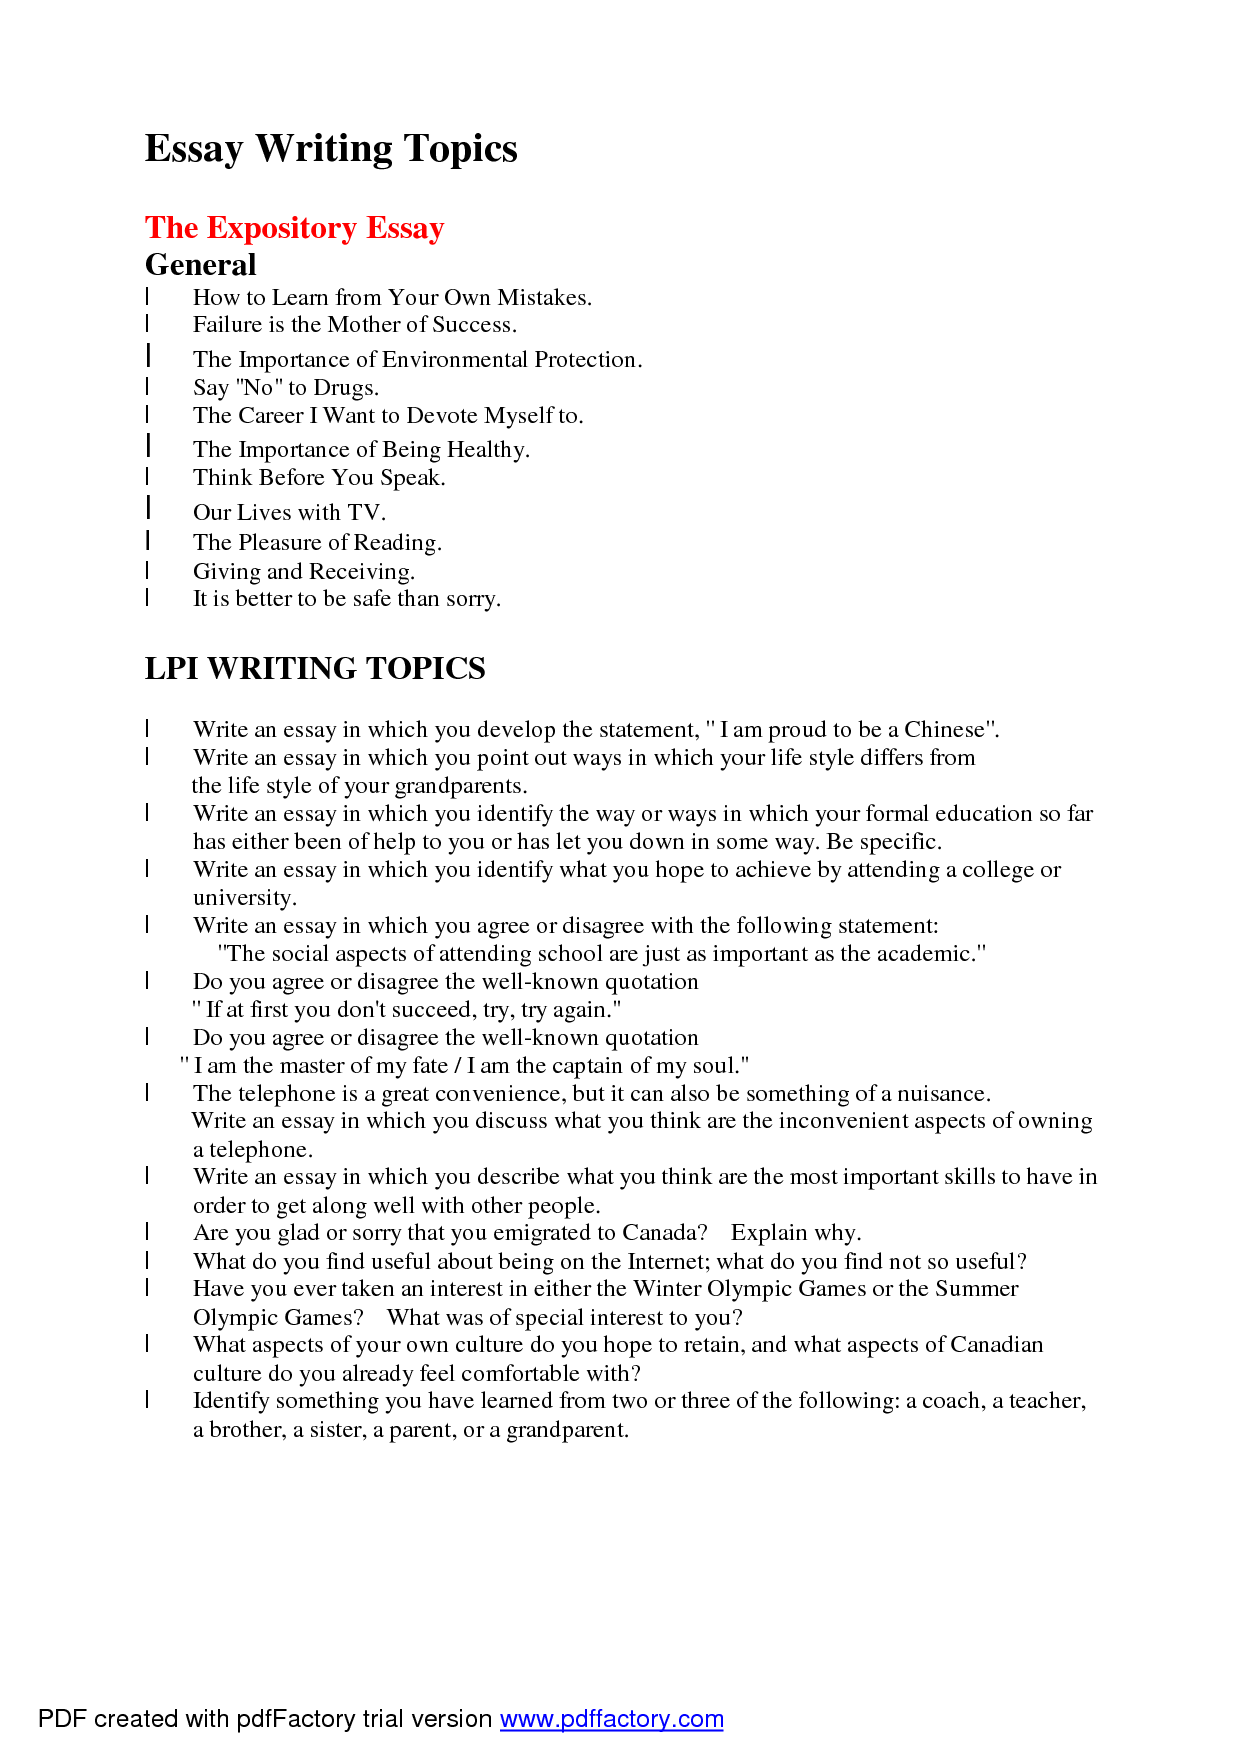 001 Essay Topics To Write About Arguable Good L Issues An Awesome Interesting On For High School Social Full